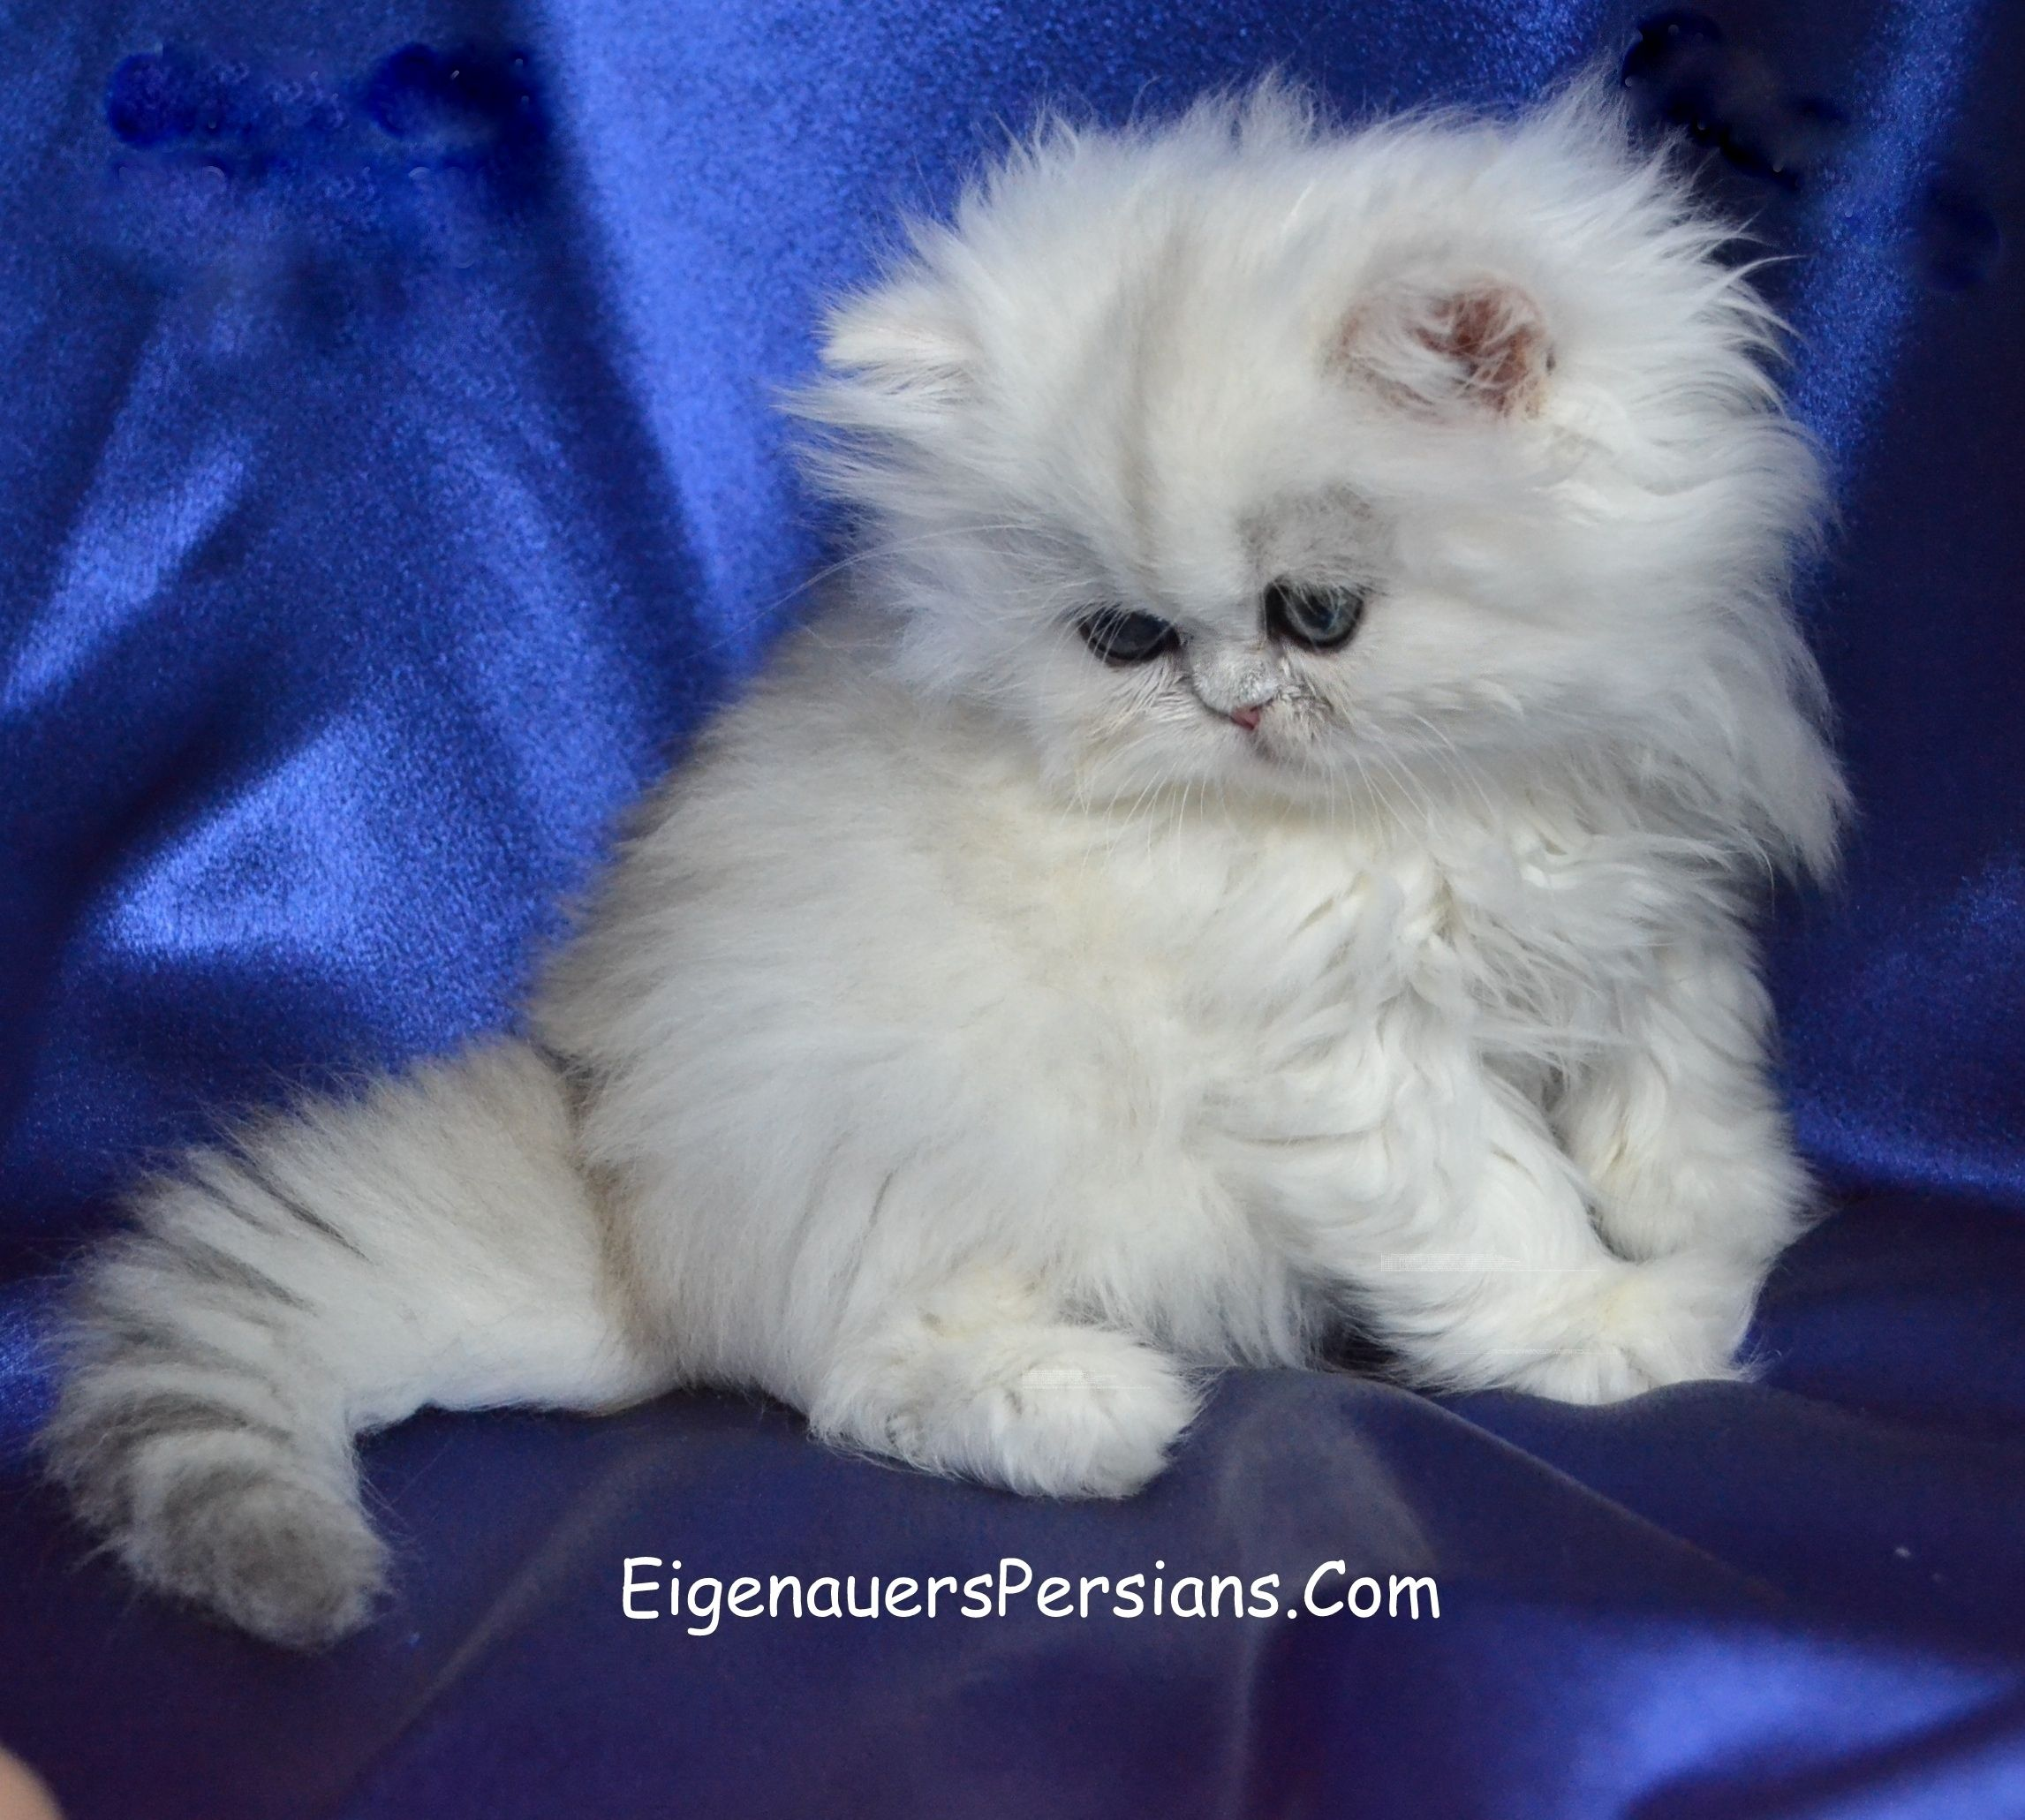 Pin On Persian Kittens For Sale Eigenauerspersians Com